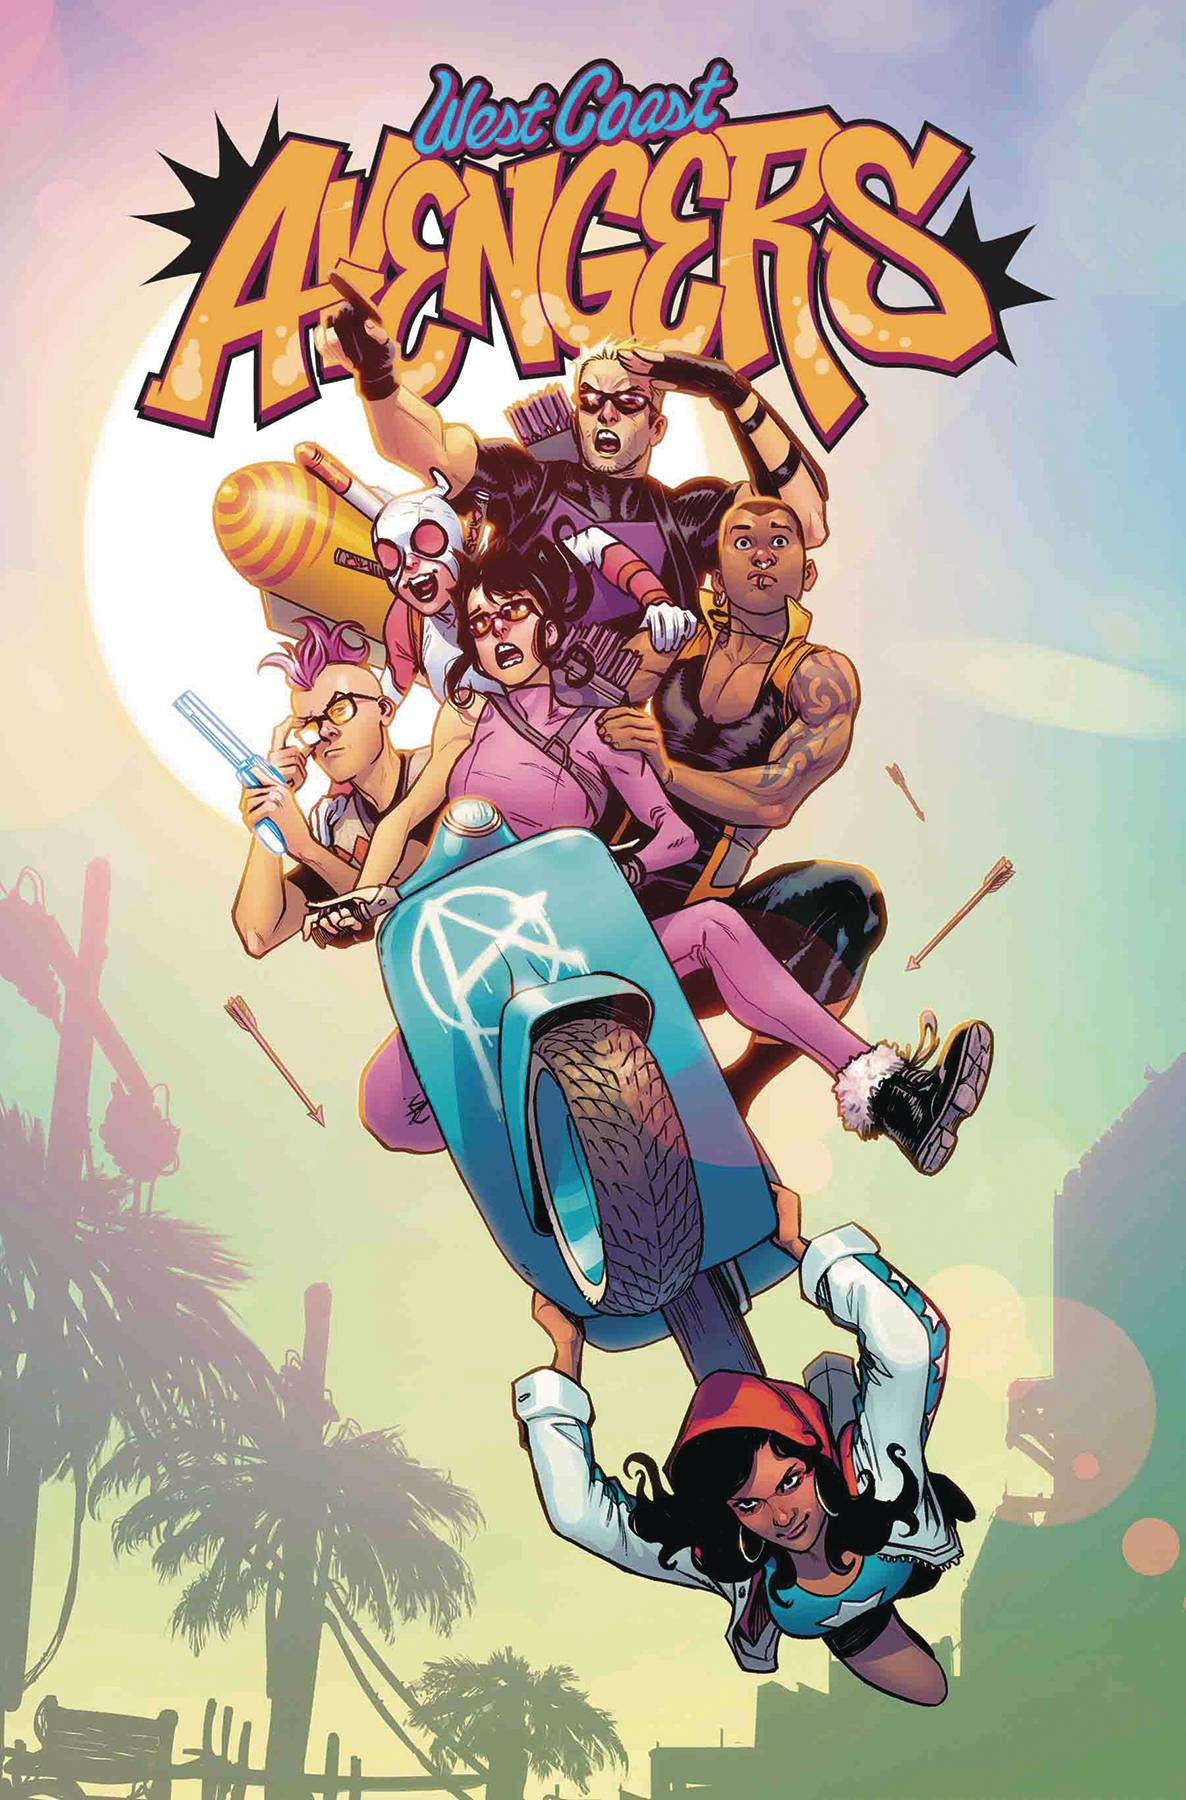 WEST COAST AVENGERS #1 BY CASELLI POSTER